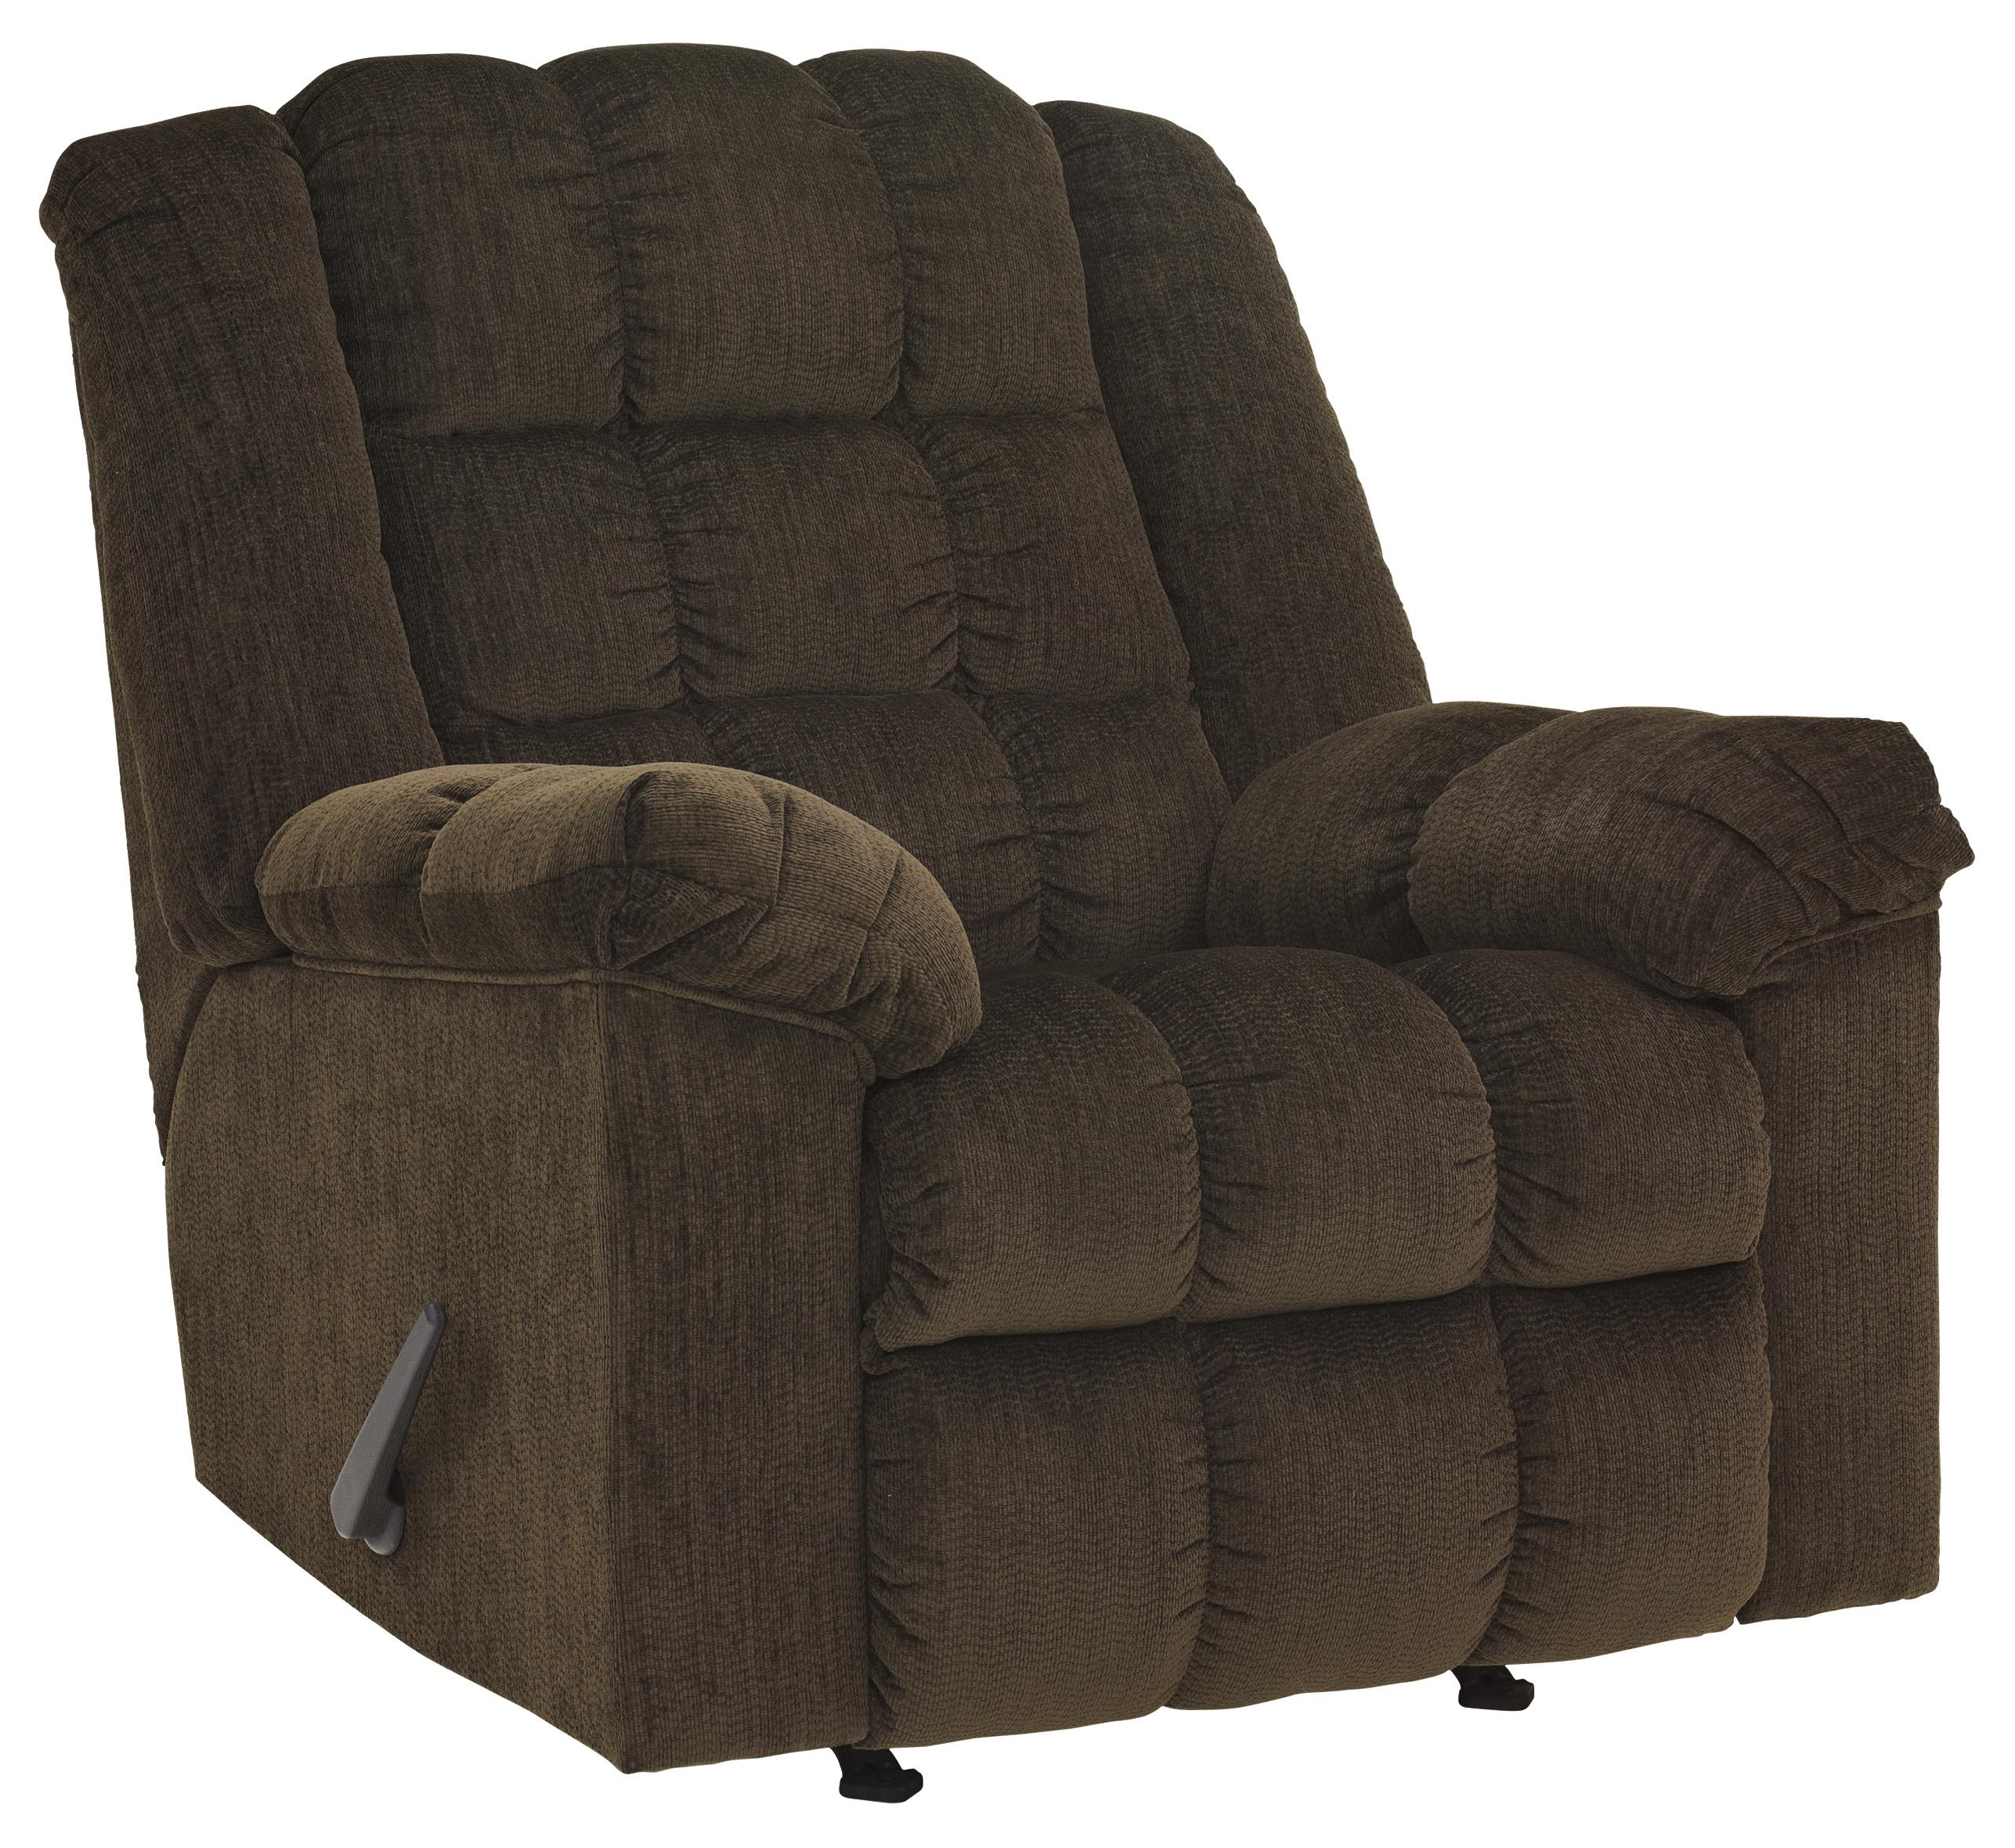 Signature Design by Ashley Ludden - Cocoa Rocker Recliner - Item Number: 8110425